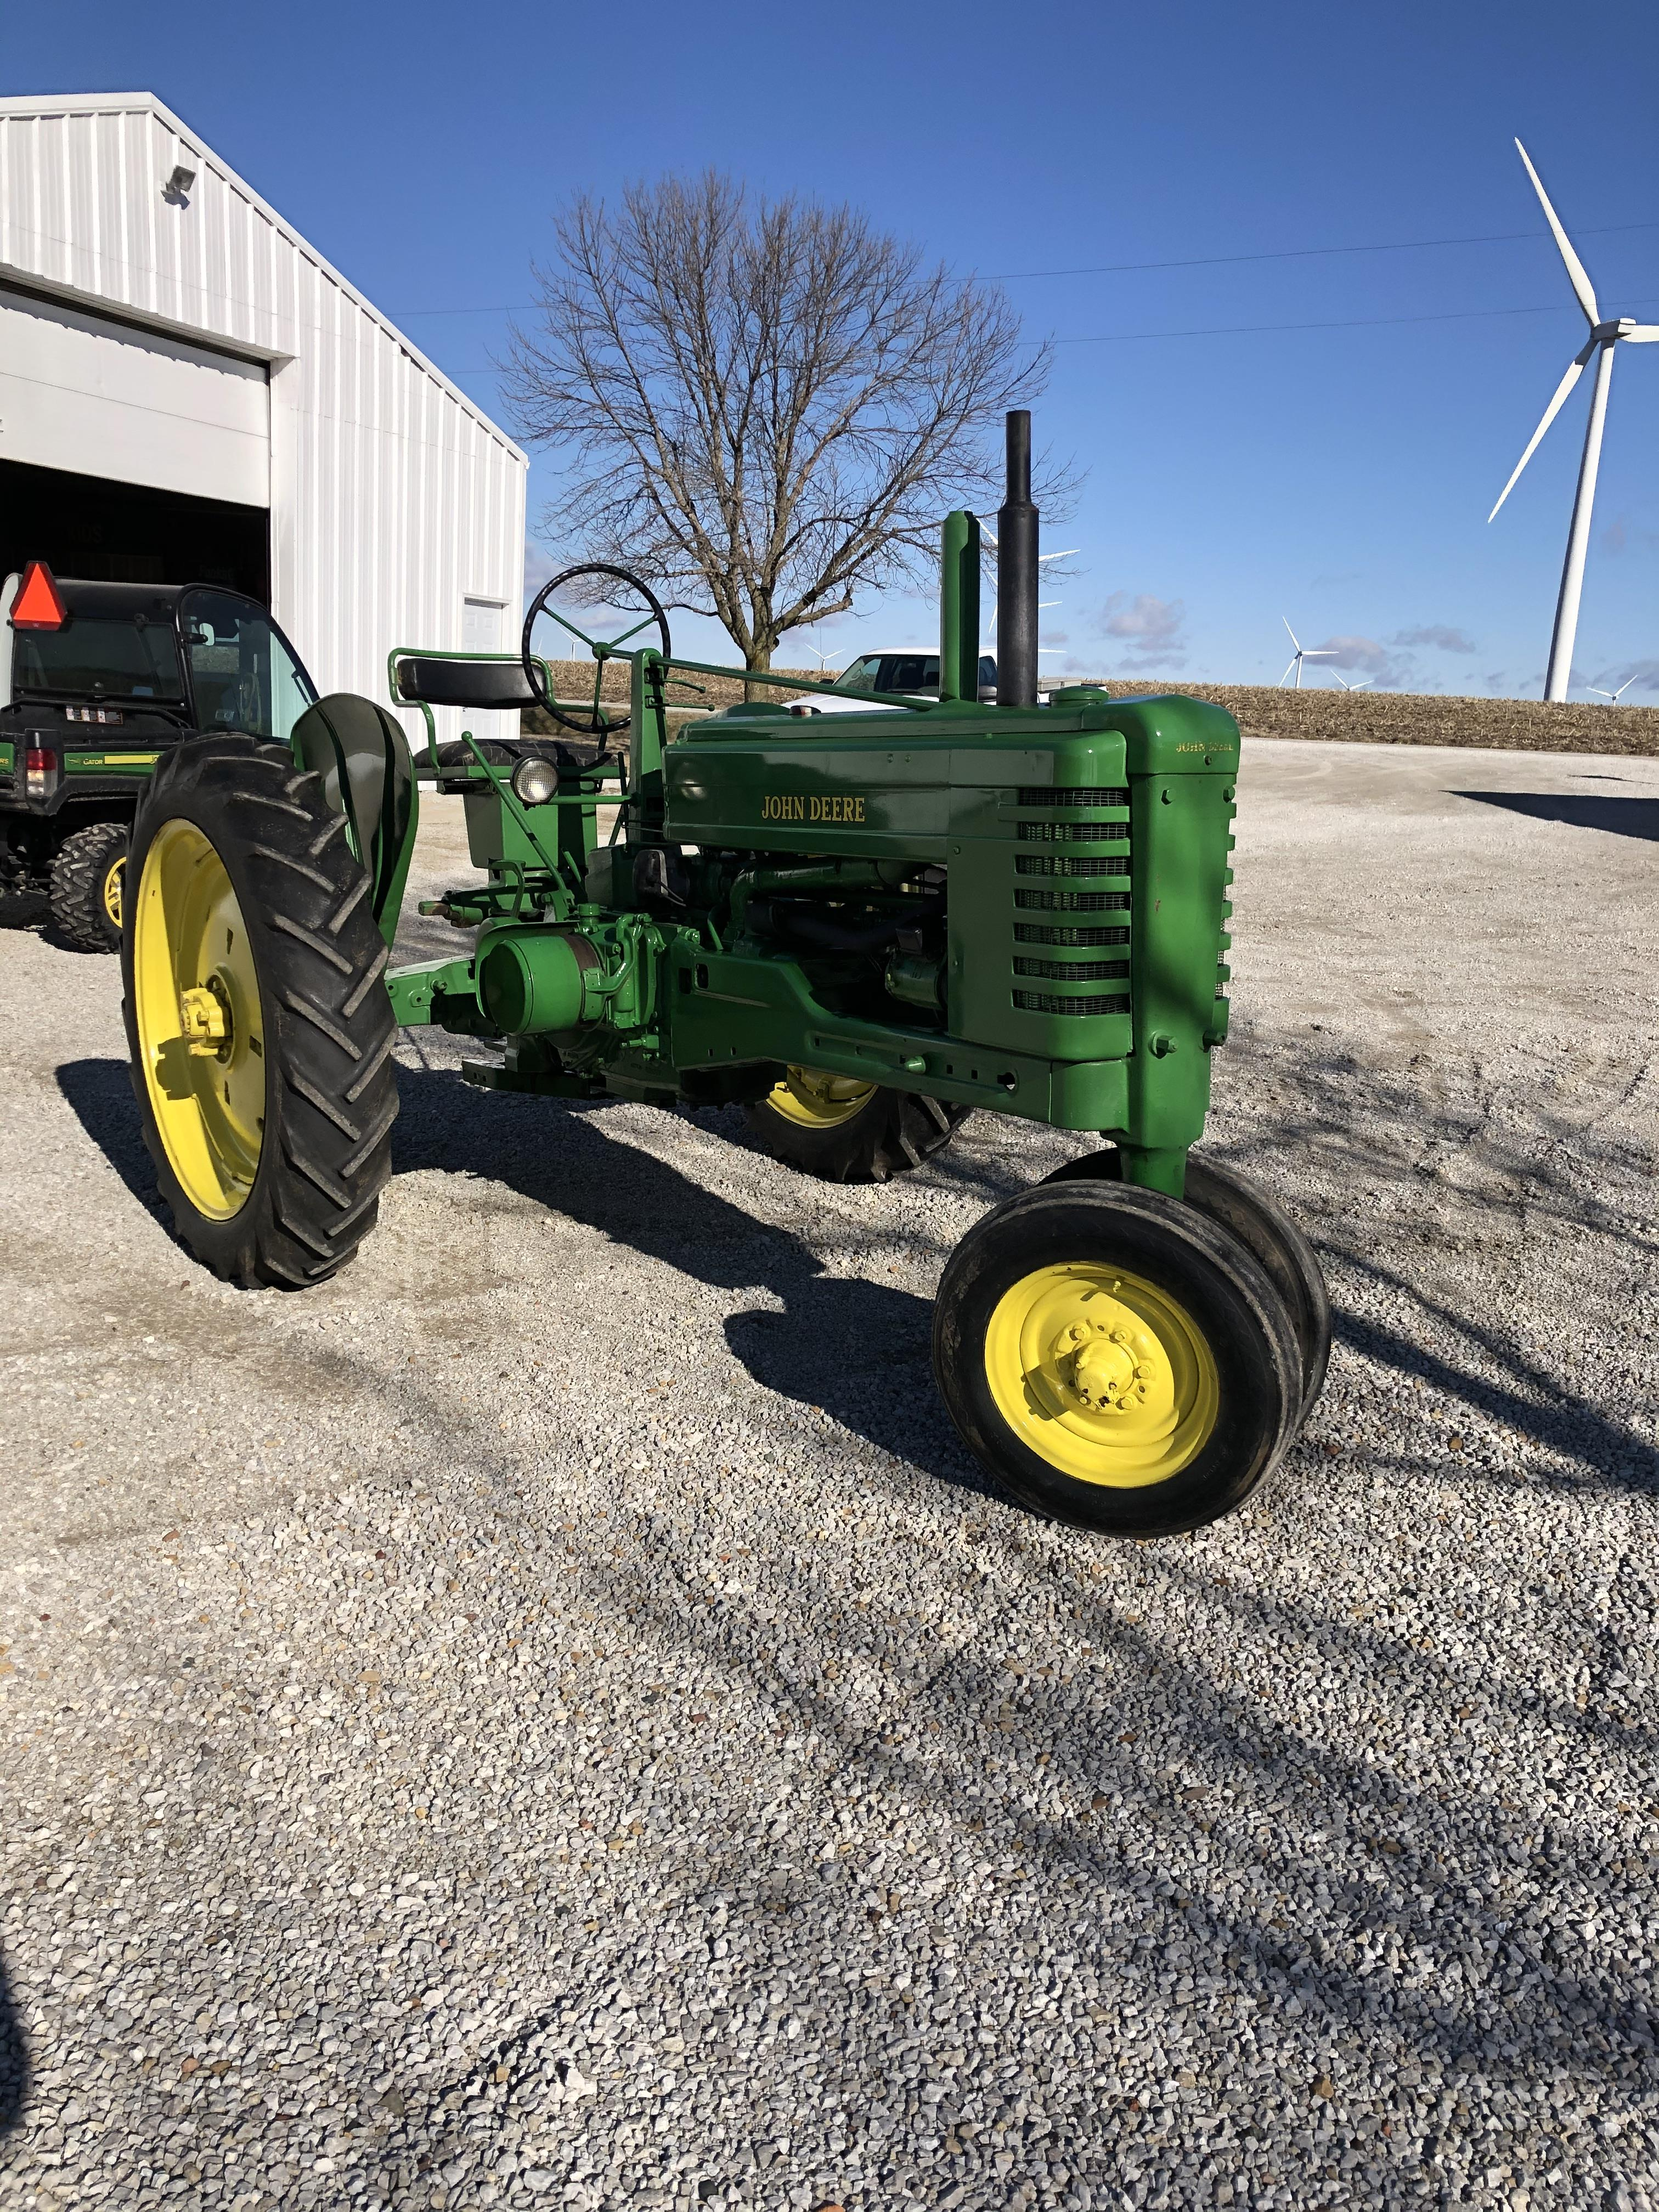 1951 John Deere B w/ Fenders Restored Sharp Looking and Running Tractor - Image 3 of 3